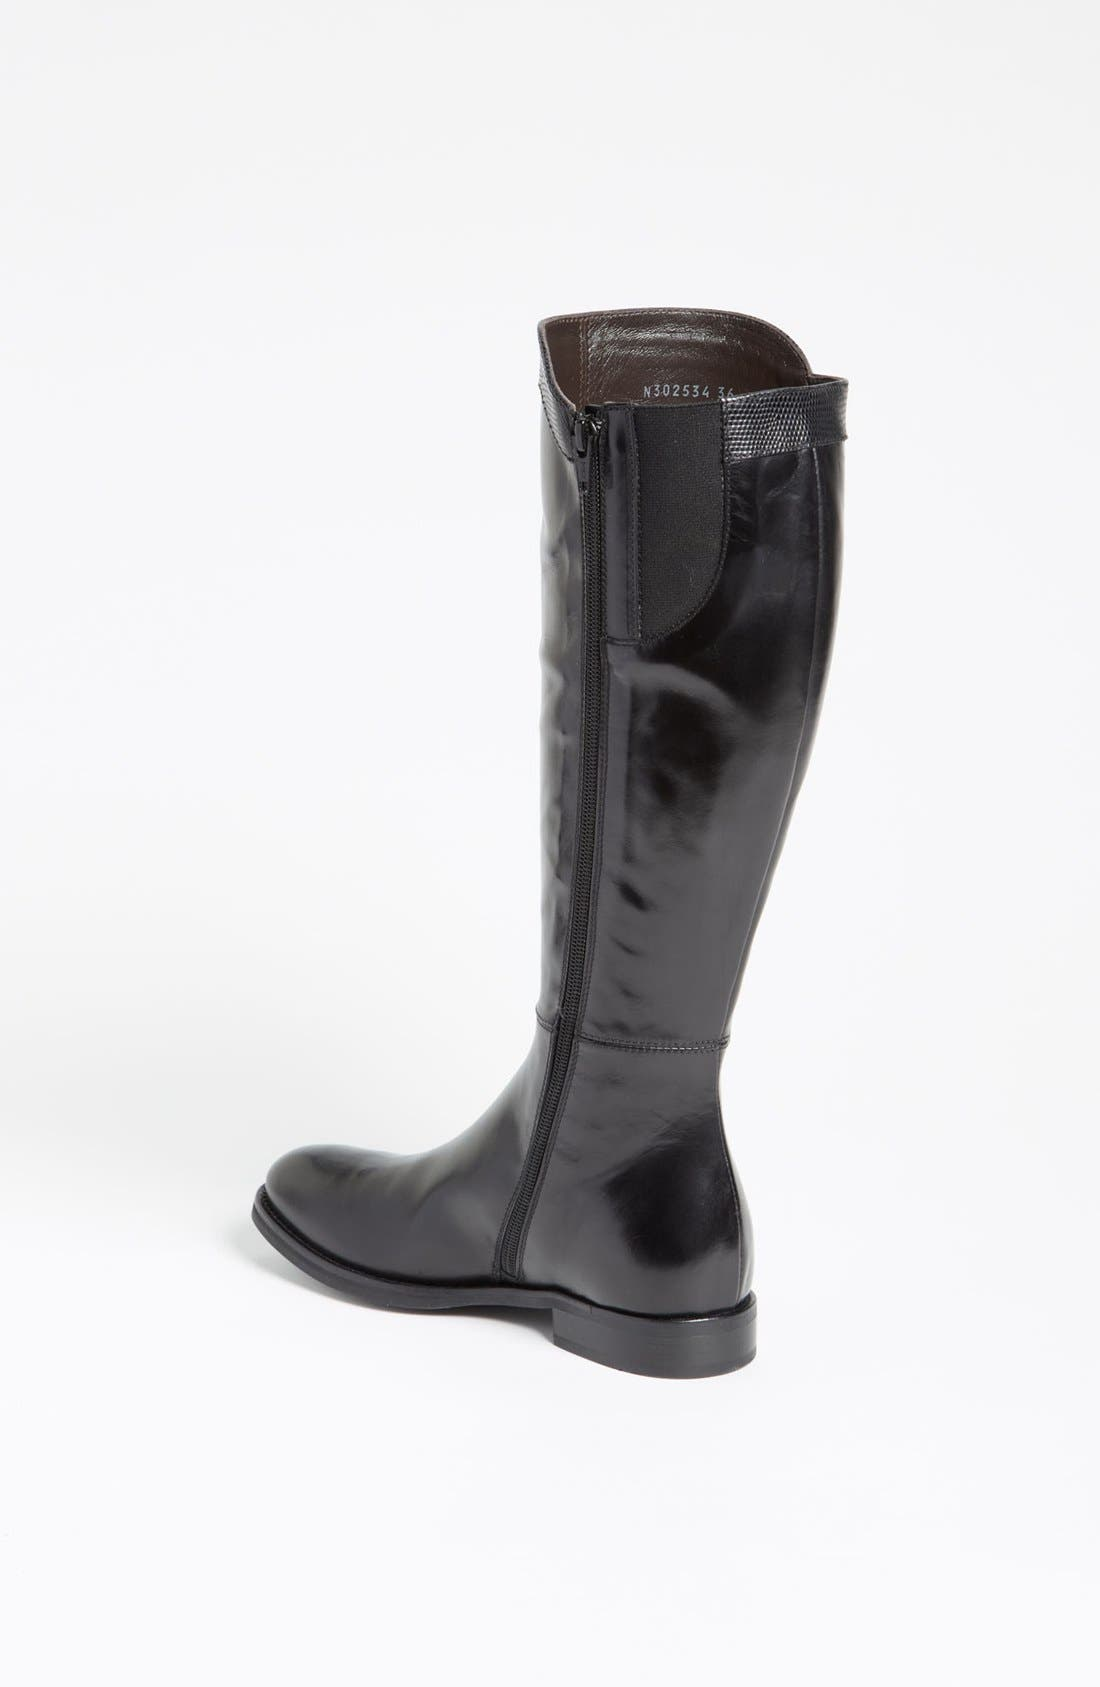 Attilio Giusti Leombruni Tall Boot,                             Alternate thumbnail 2, color,                             Black